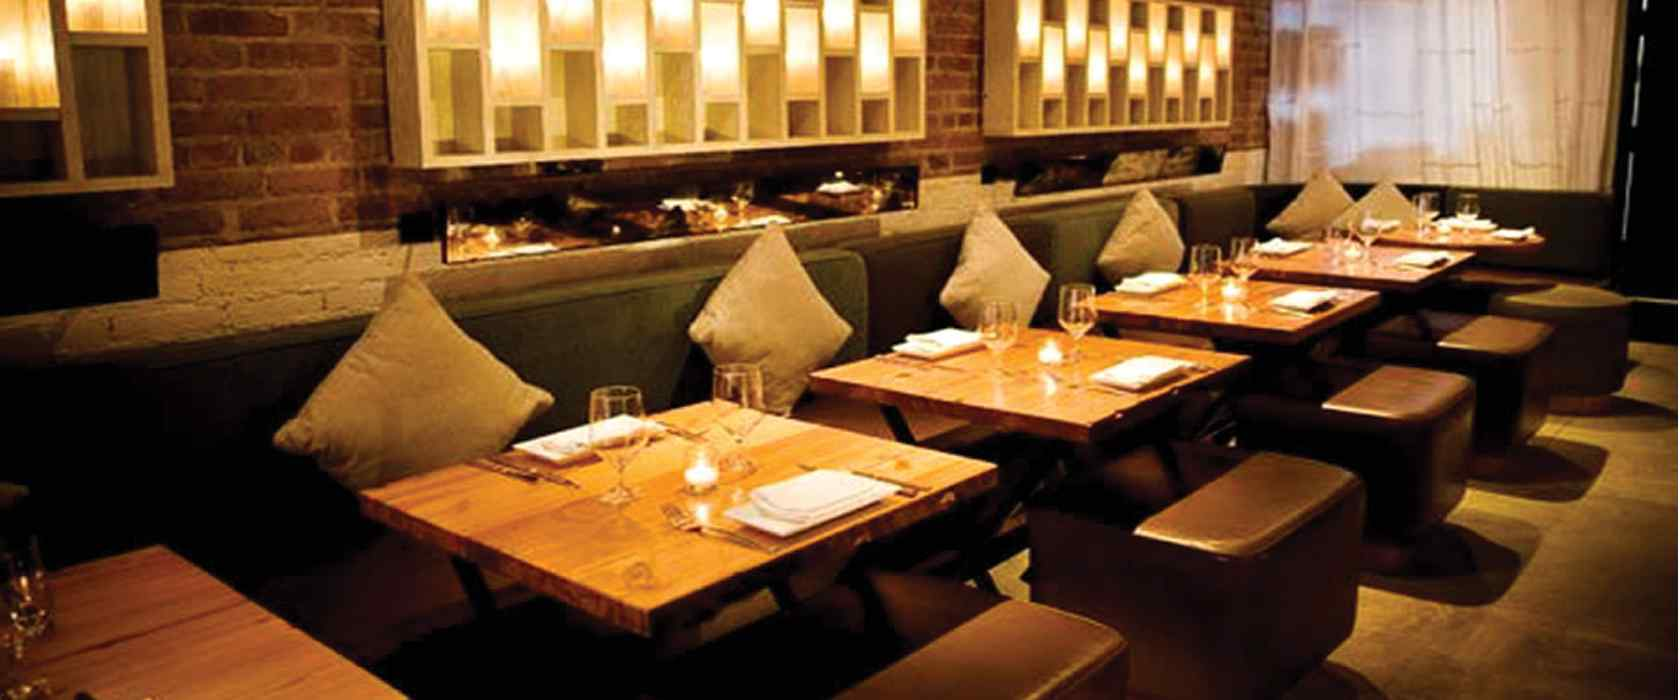 Importance Of Interior Decoration In Restaurants